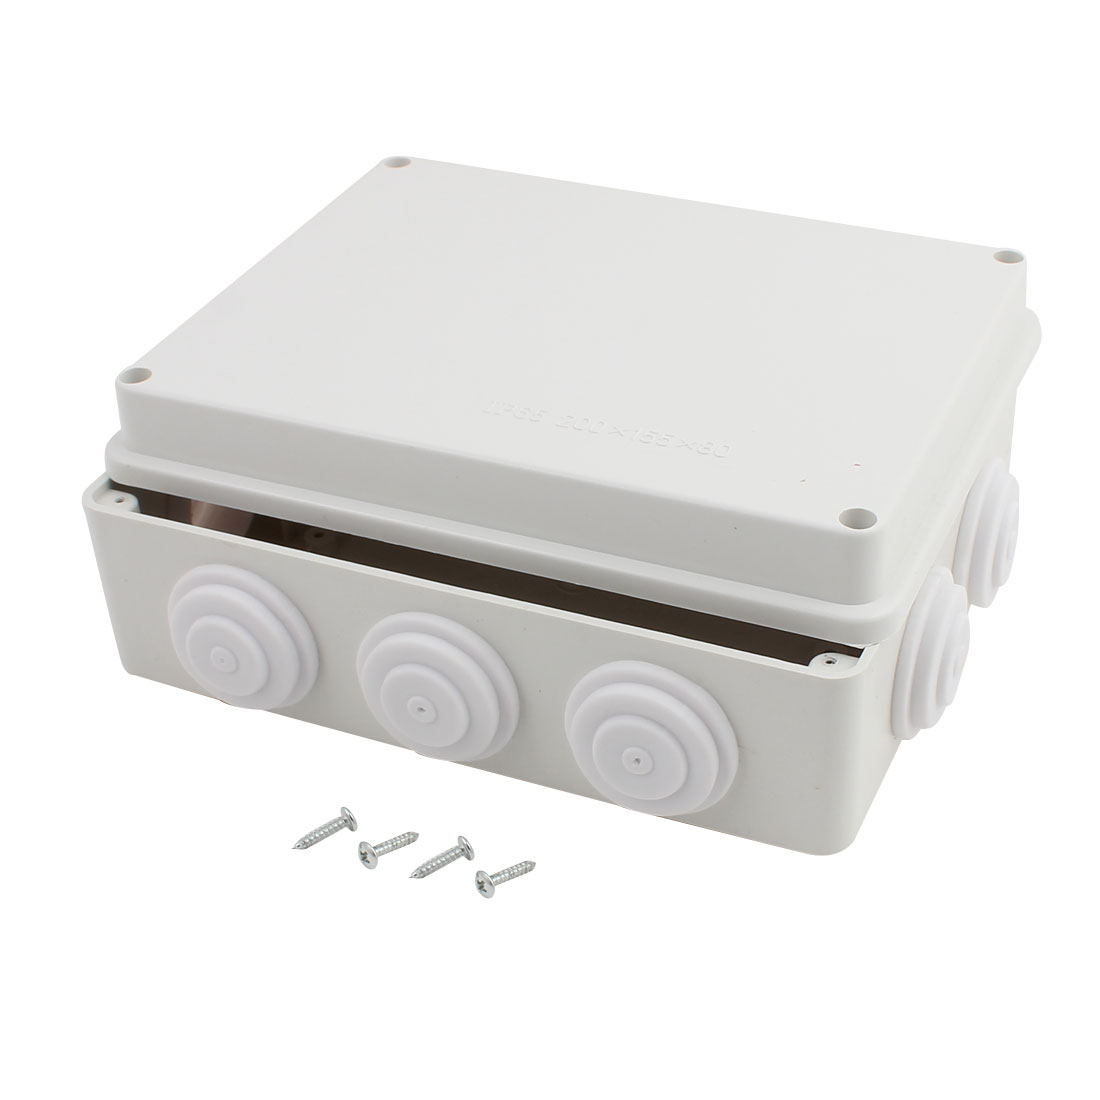 200mmx155mmx80mm Dustproof IP65 Junction Box Electric Project Enclosure